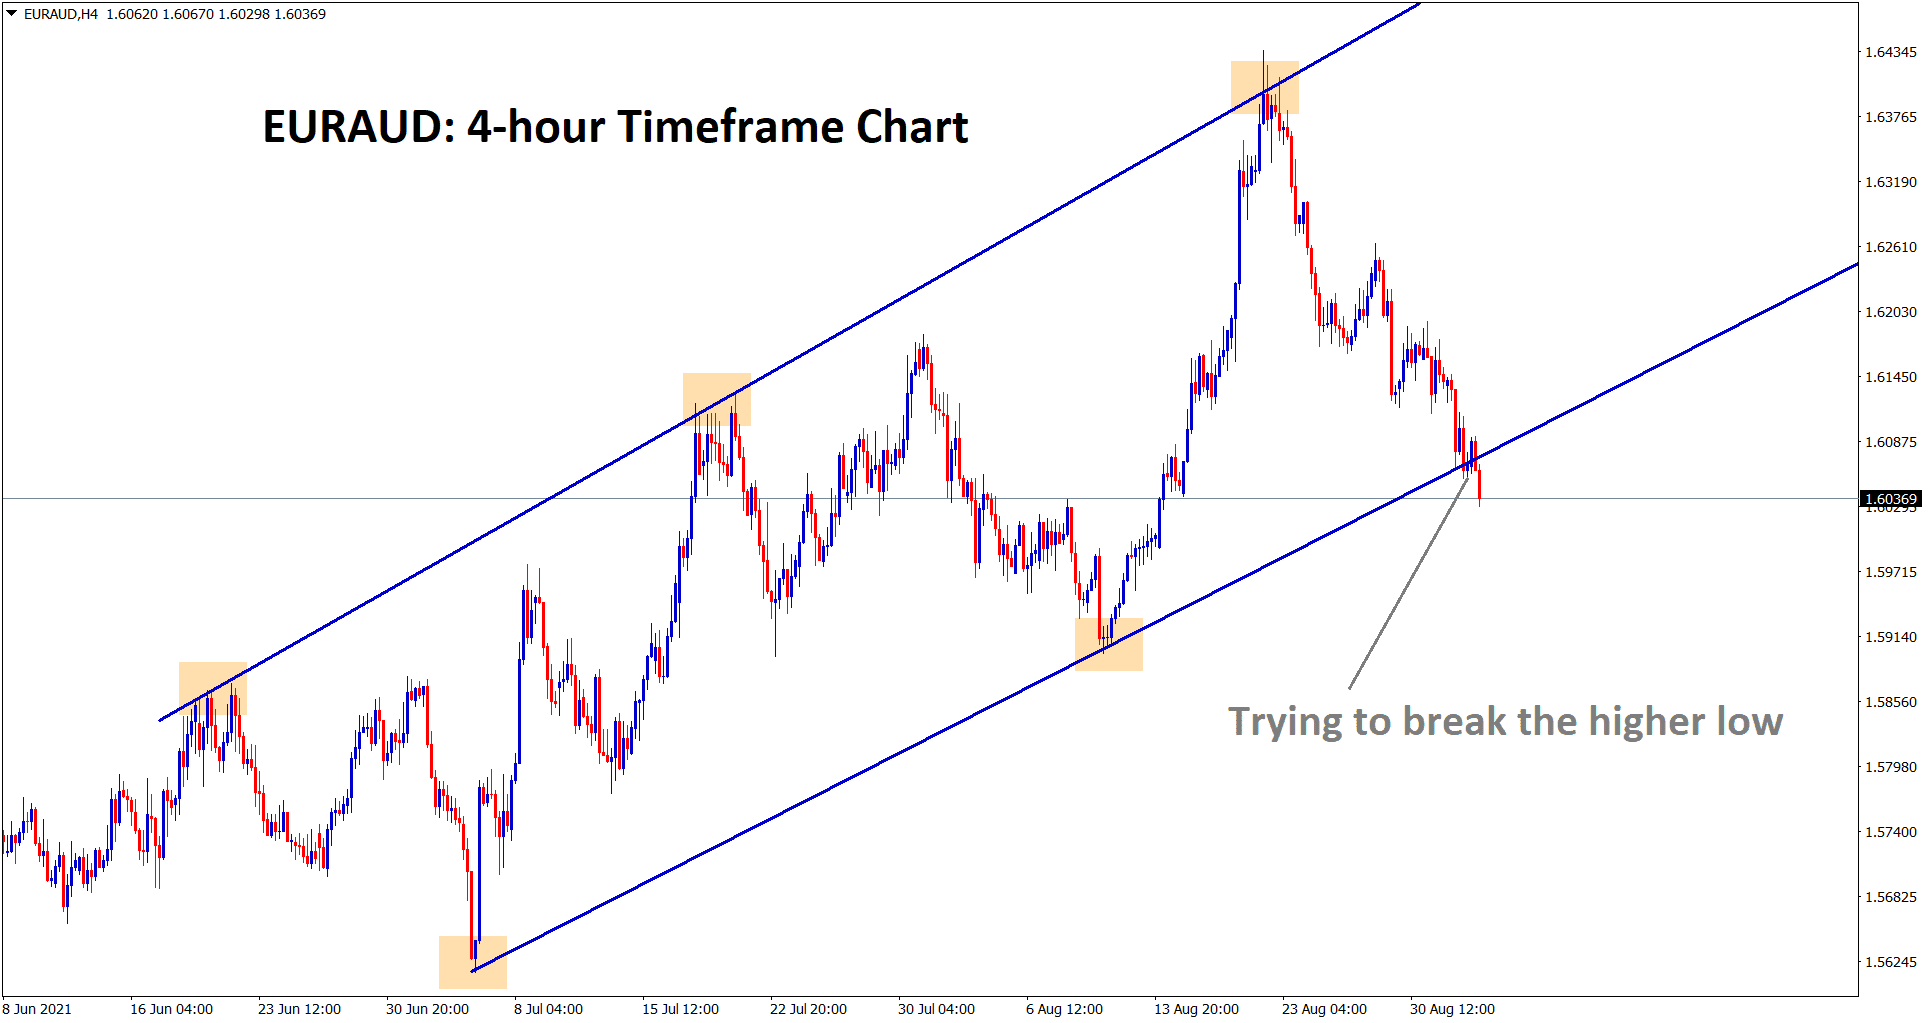 EURAUD is trying to break the higher low of an uptrend line